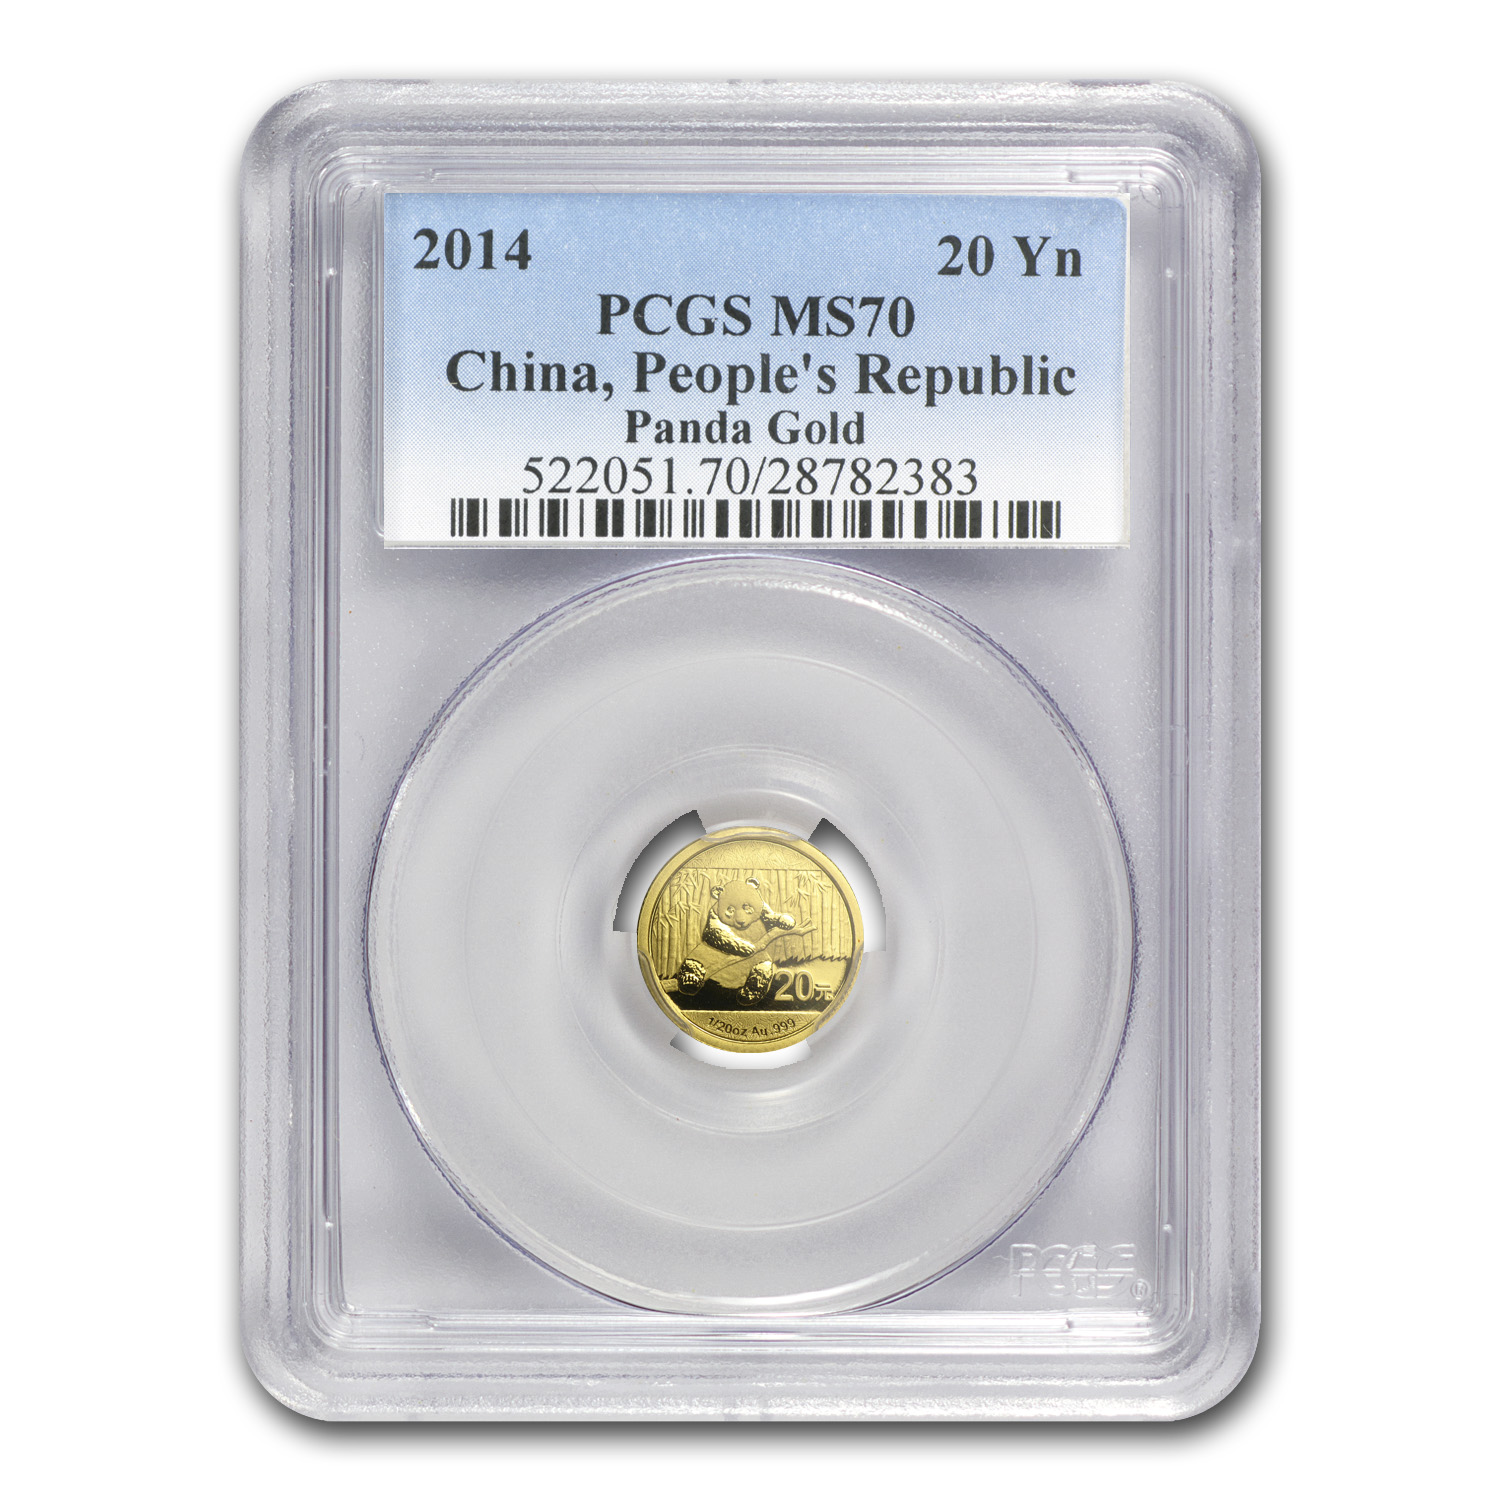 2014 China 1/20 oz Gold Panda MS-70 PCGS